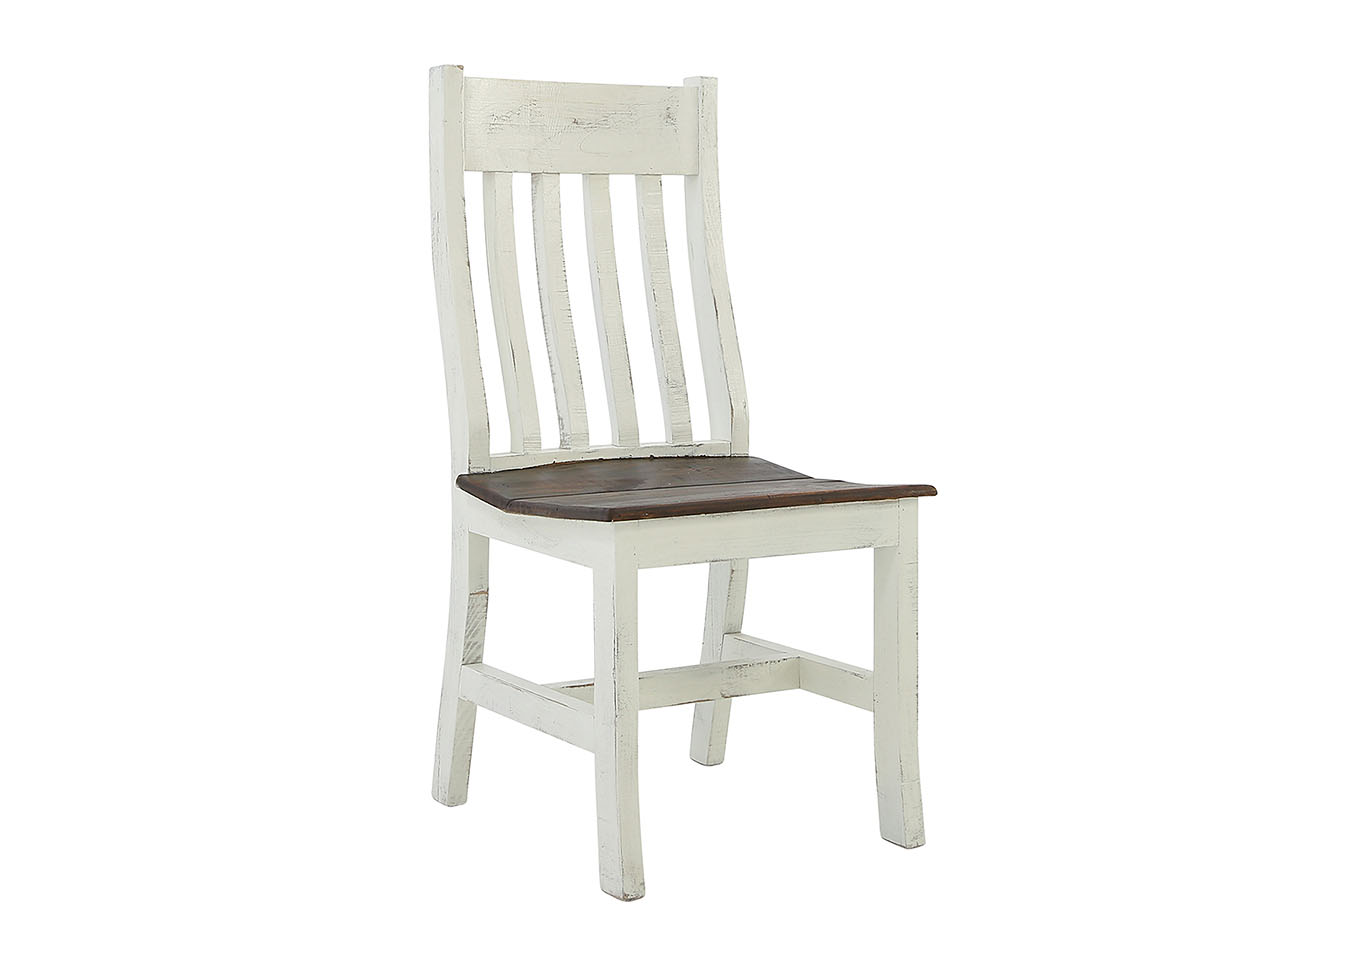 KARA RUSTIC SIDE CHAIR,VINTAGE FURNITURE LLC